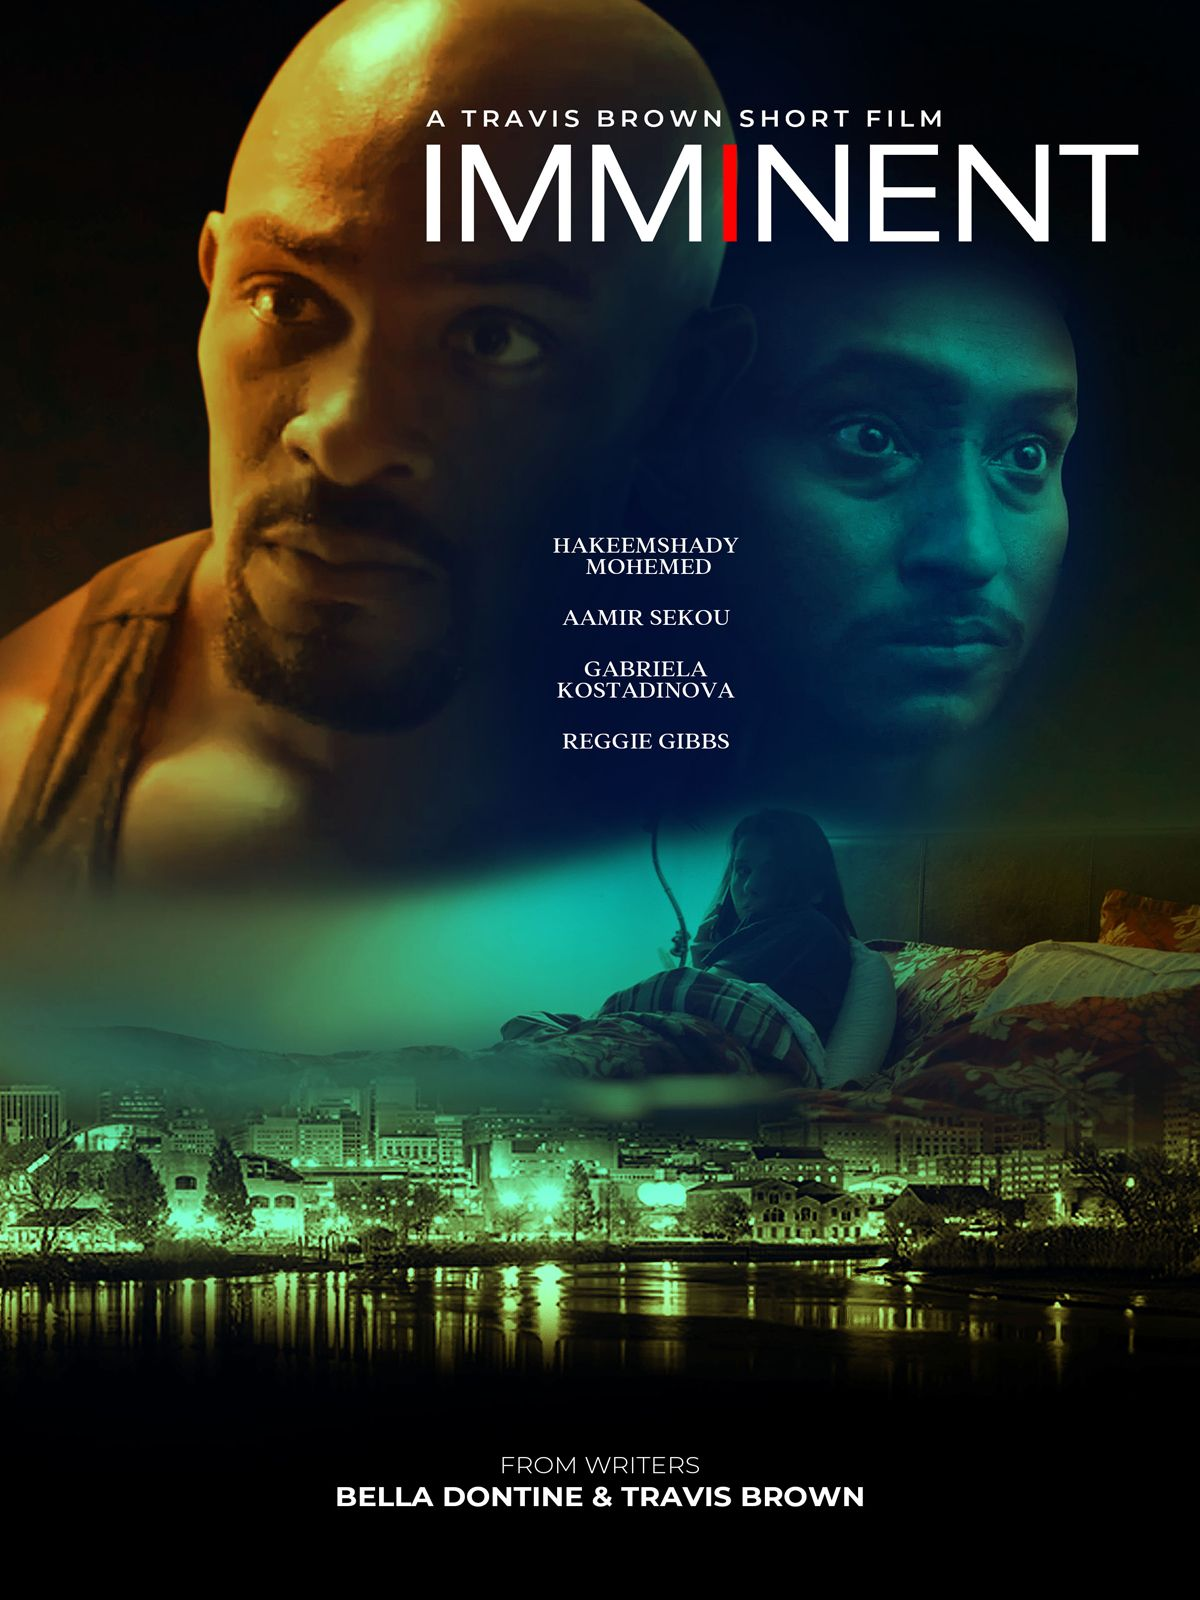 IMMINENT directed by Travis Brown (Amazon Prime)